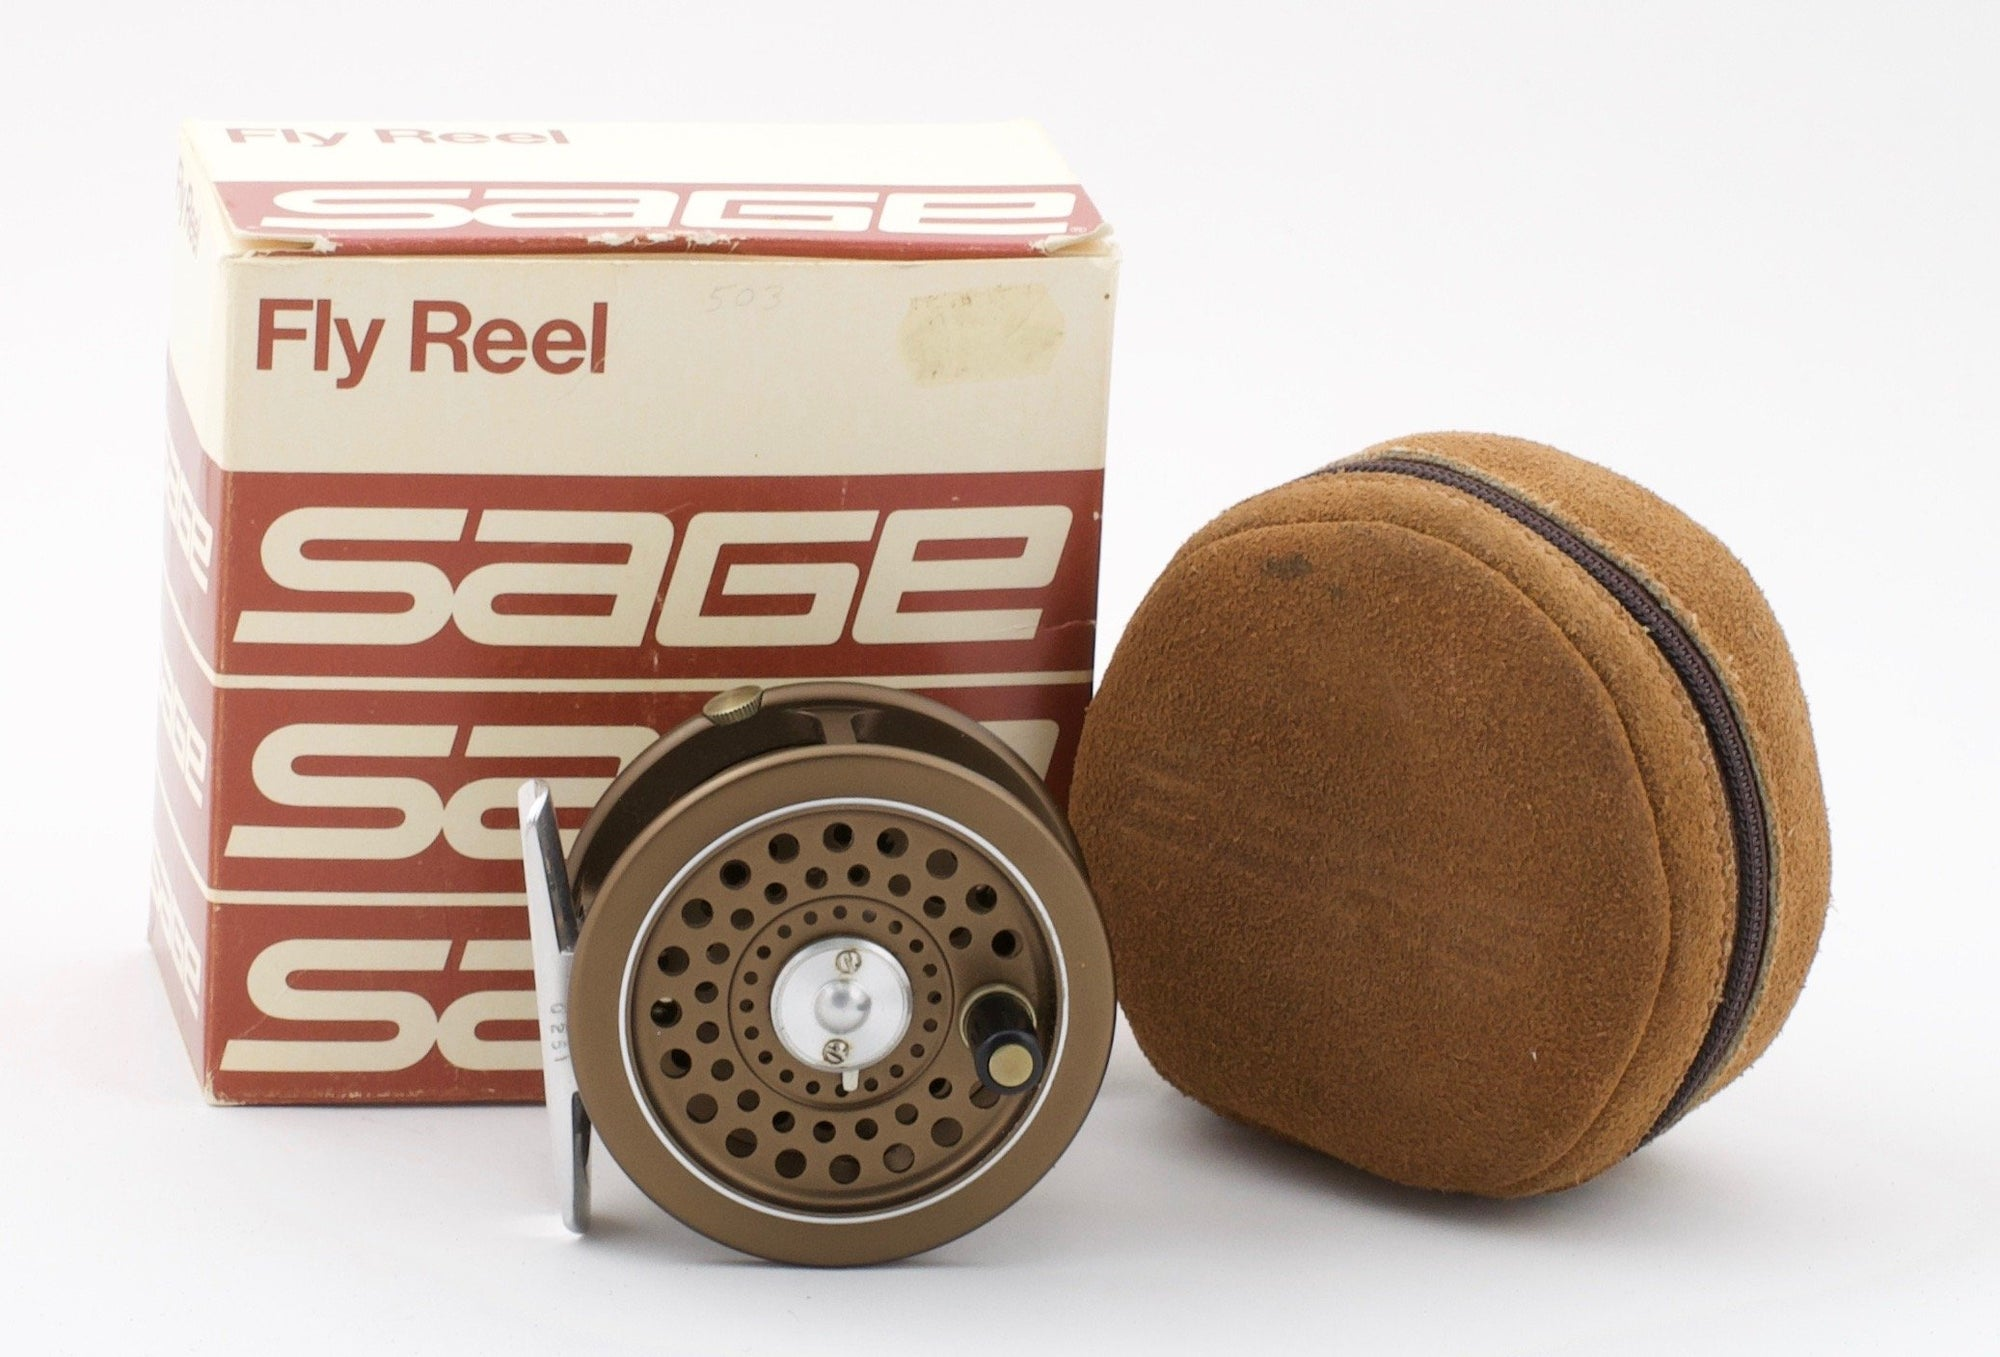 Sage 503L fly reel and spare spool (made by Hardy)